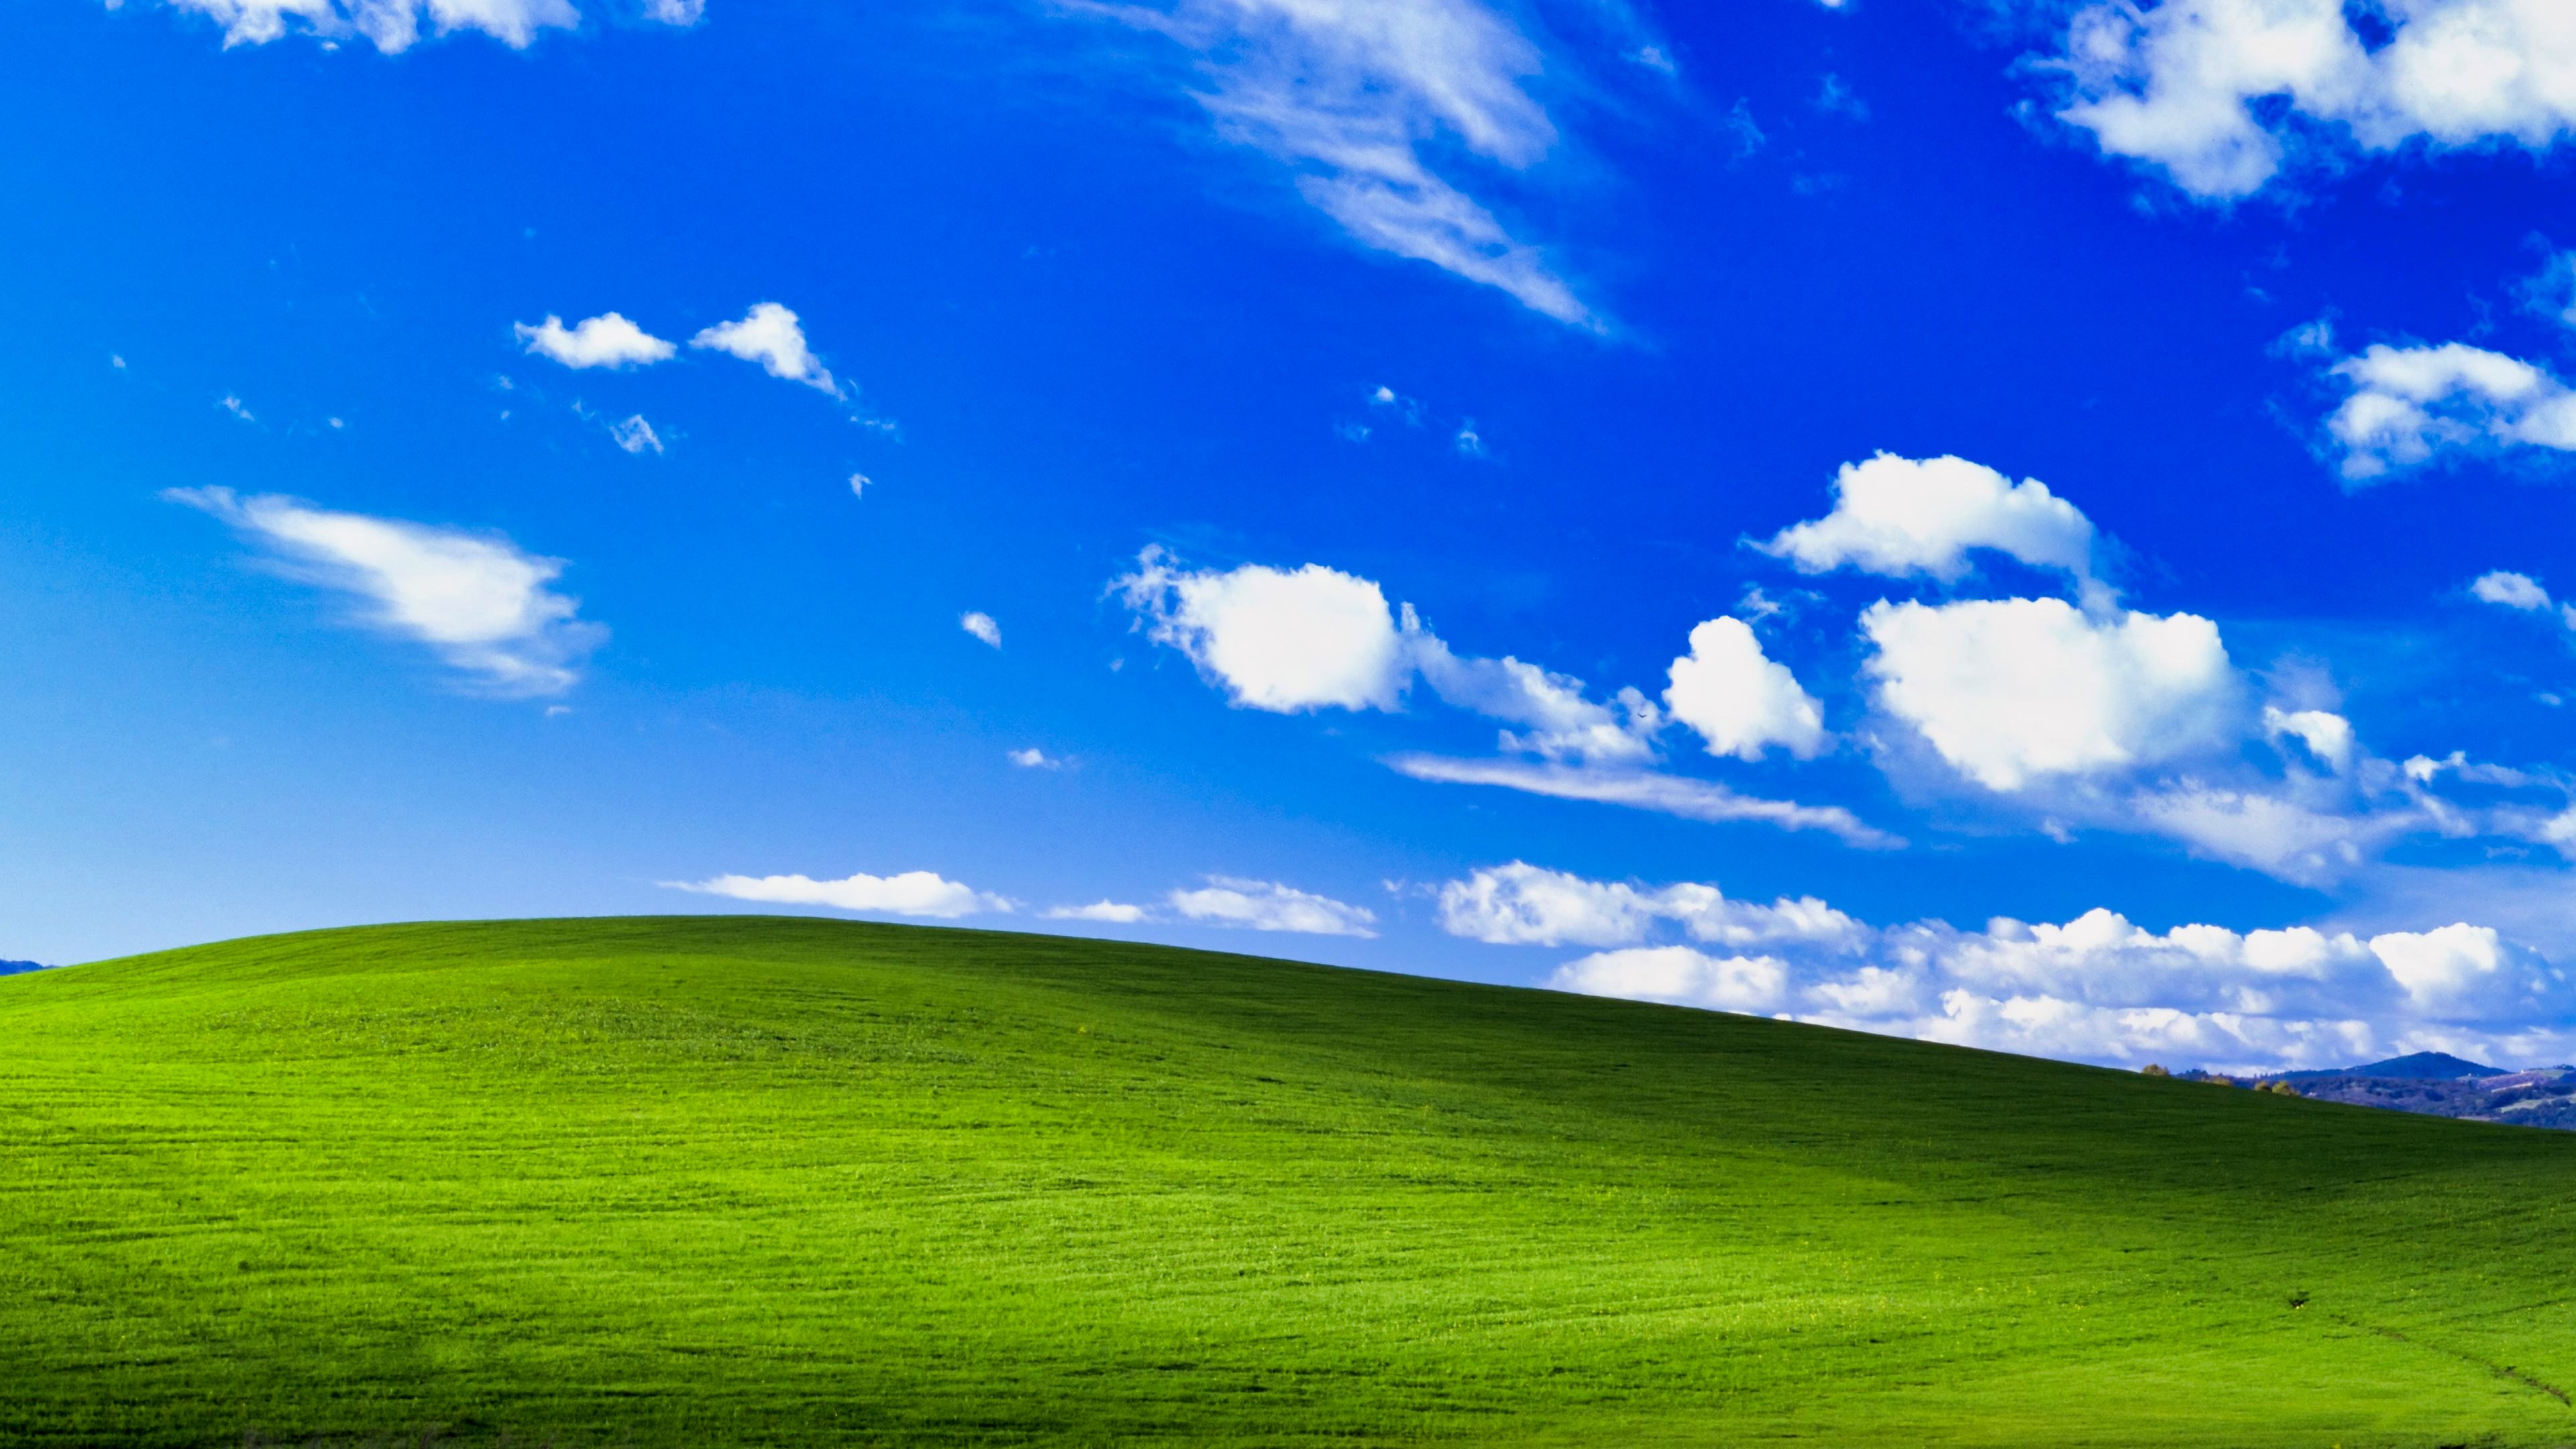 Original Windows XP Wallpaper in 4K   3840x2160   Buzz Uploads 3840x2160